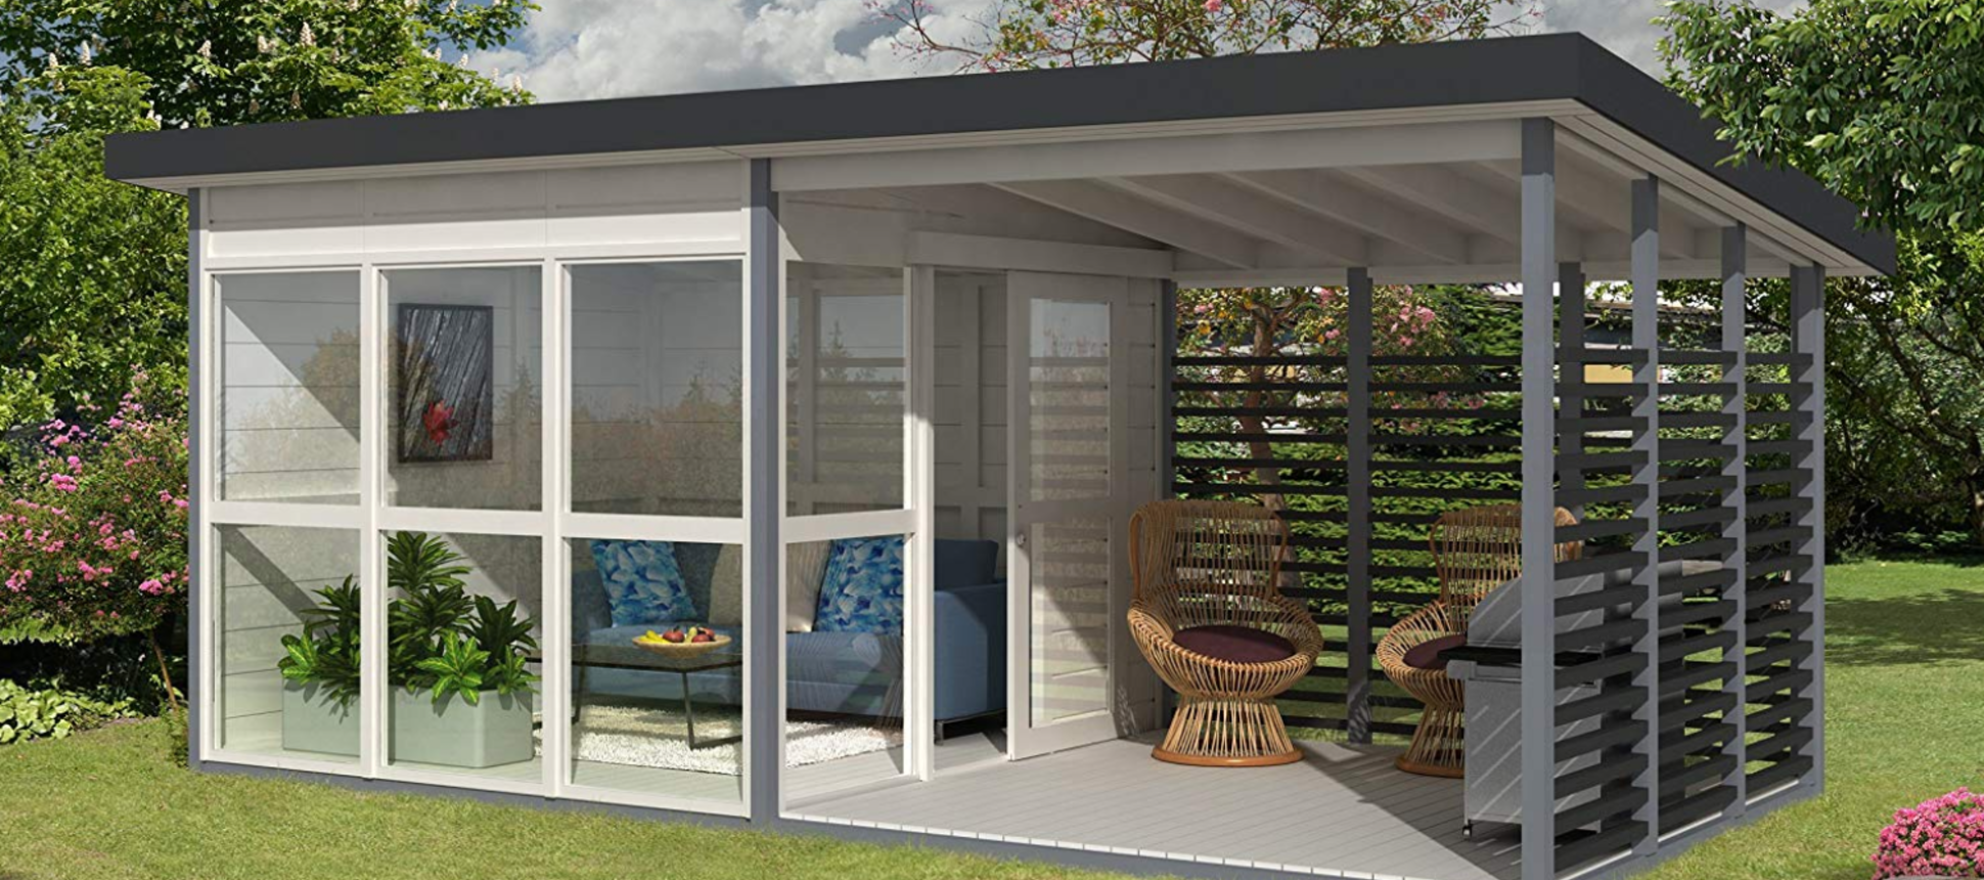 Amazon's $7K, DIY tiny home goes viral, sells out ...